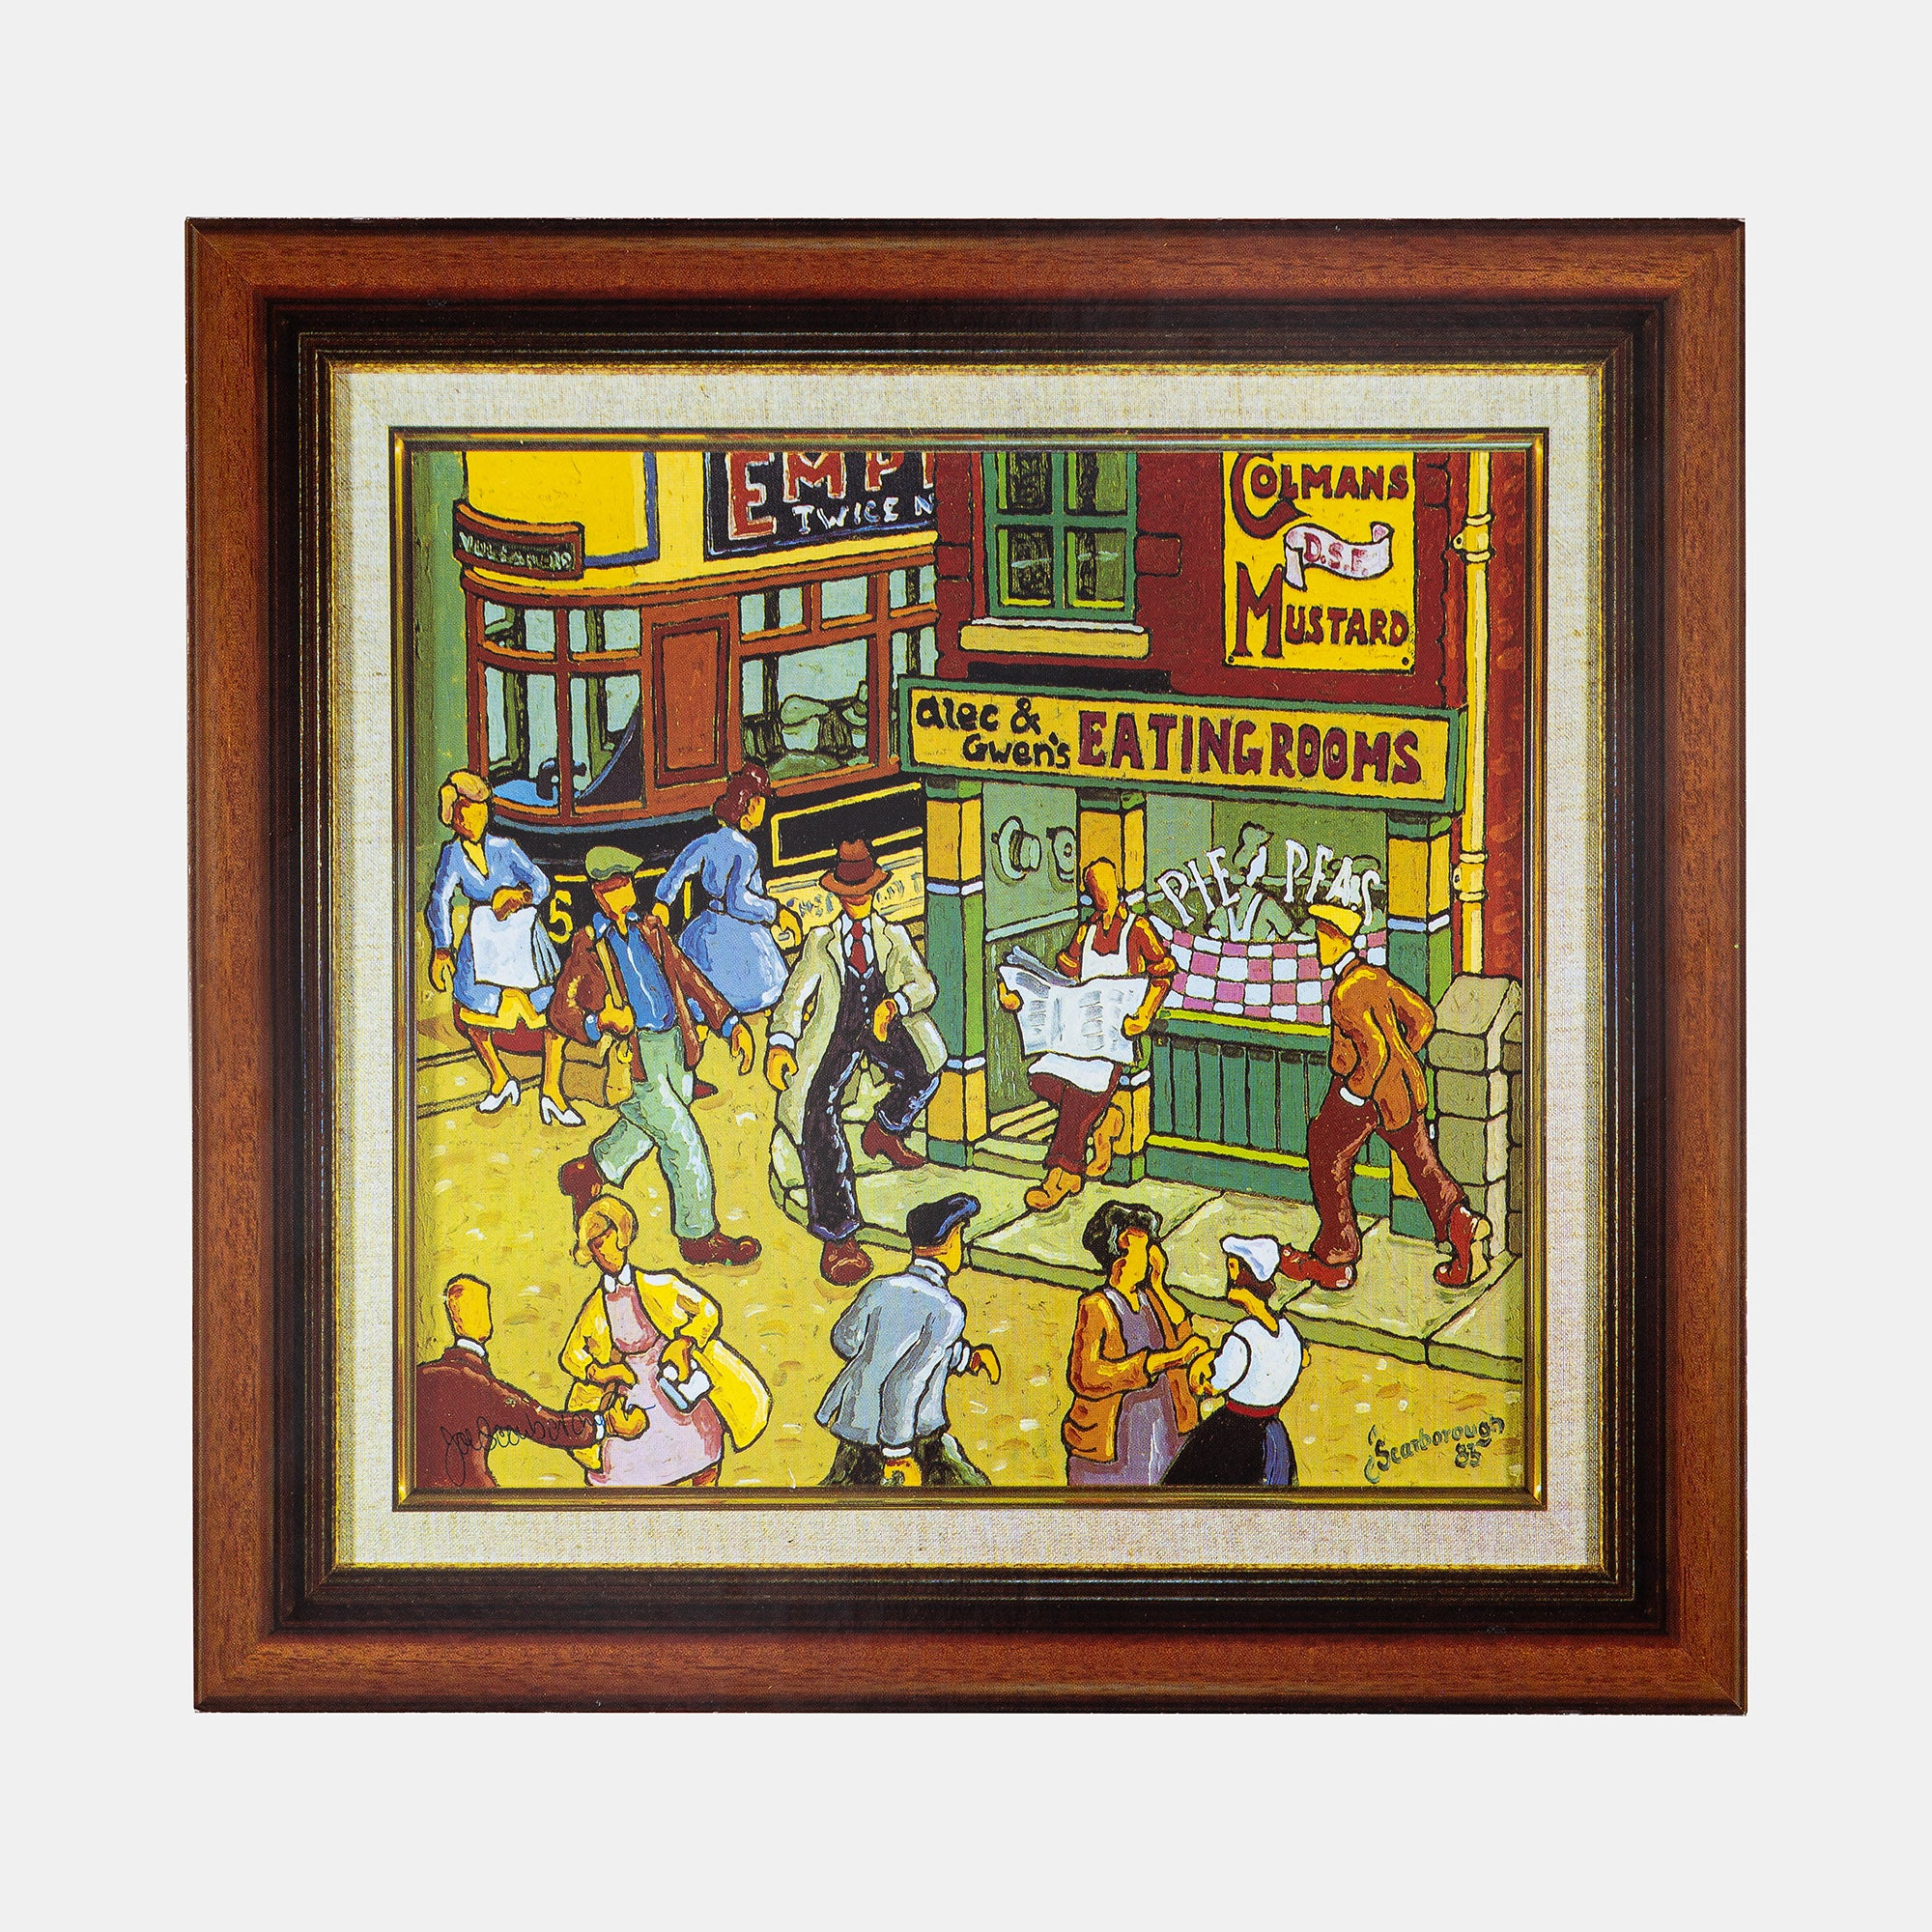 Alec & Gwen's eating rooms by Joe Scarborough Signed Artboard